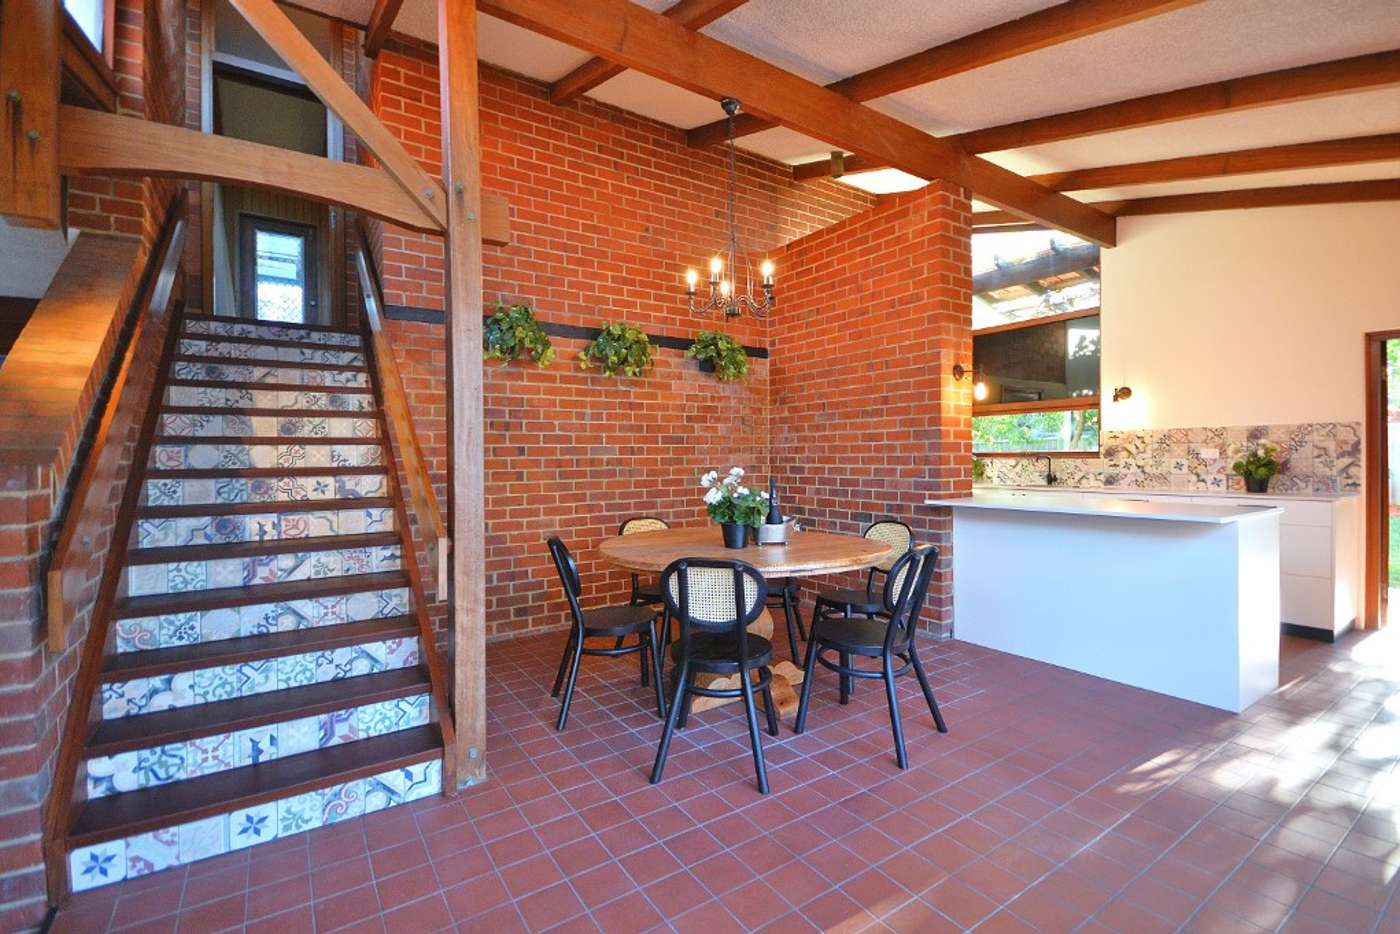 Main view of Homely house listing, 77 Bruce Street, Nedlands WA 6009